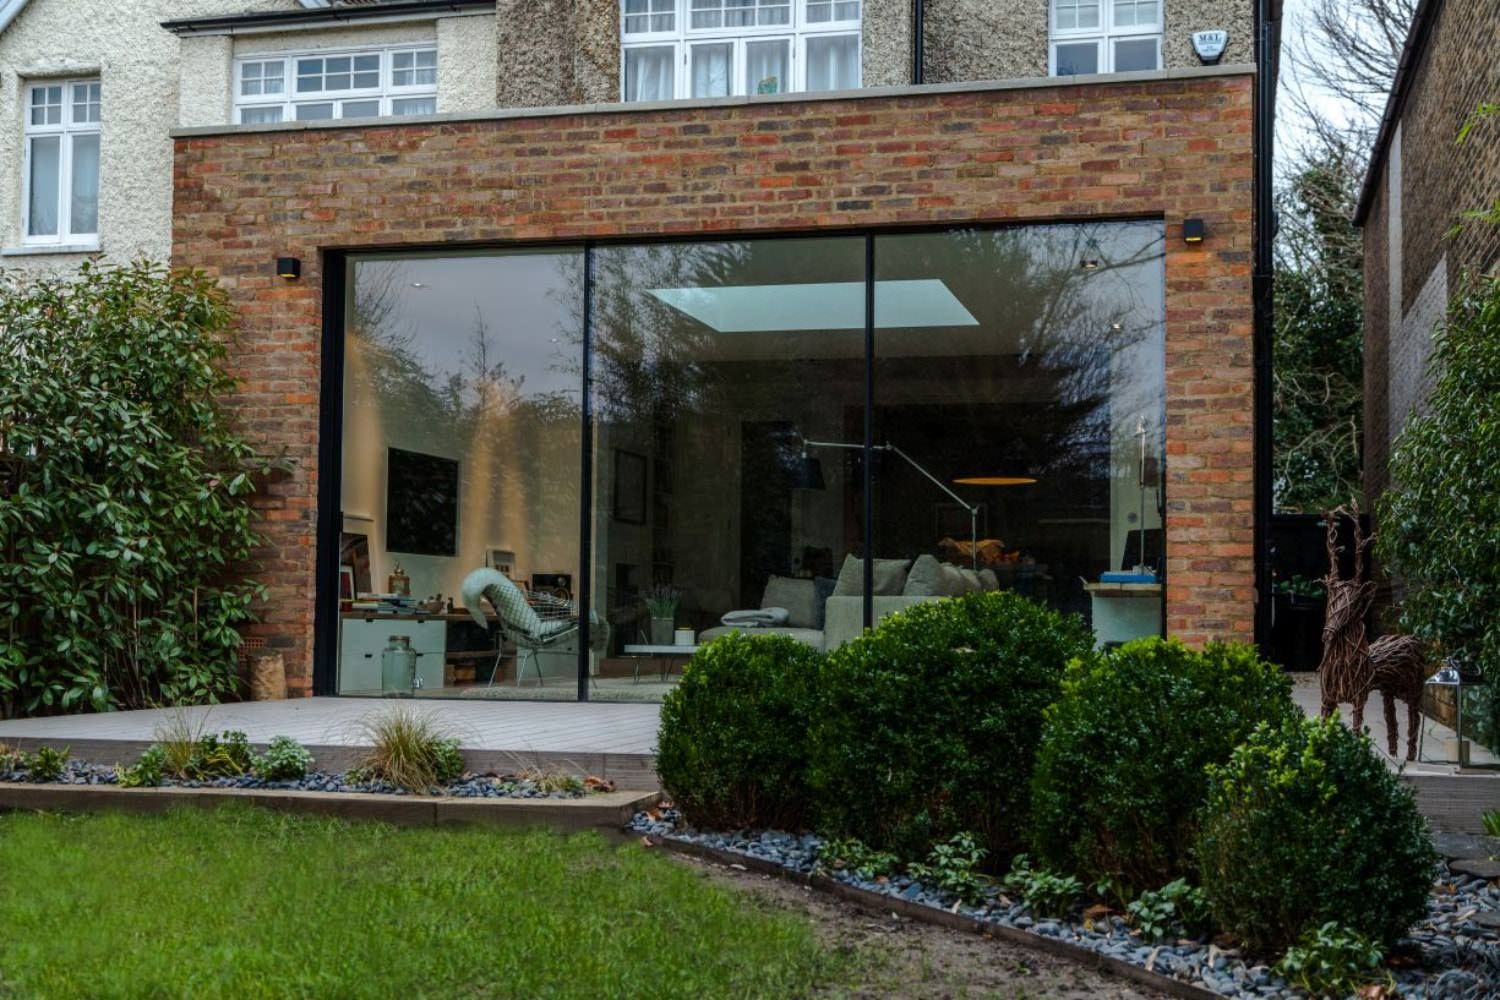 Richmond london structural glazing